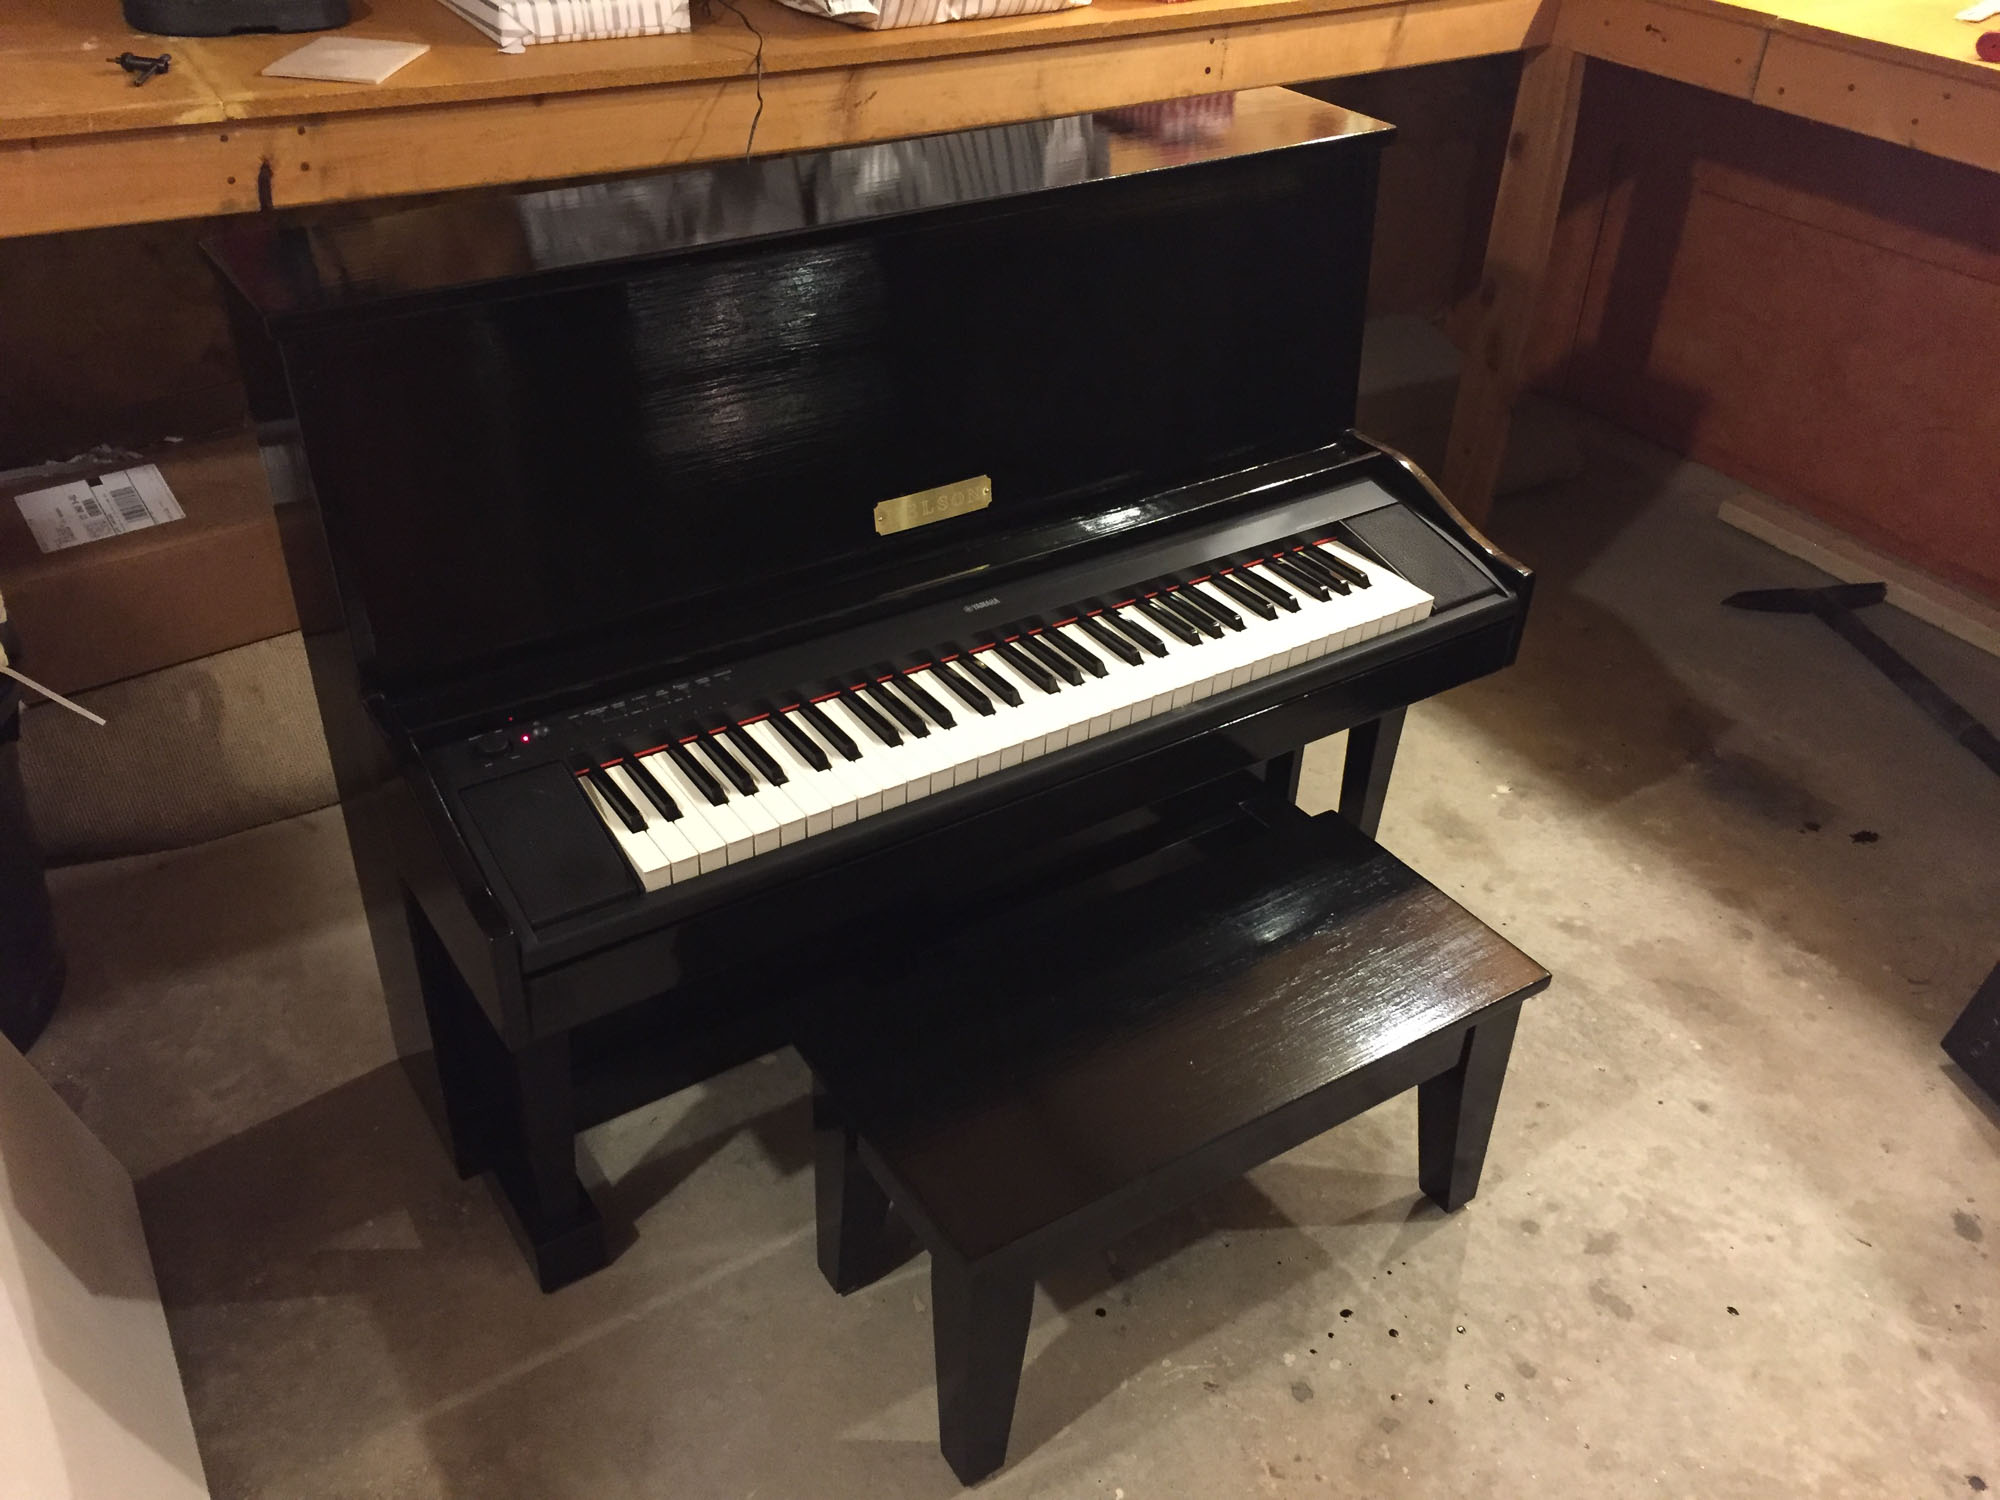 Finished piano